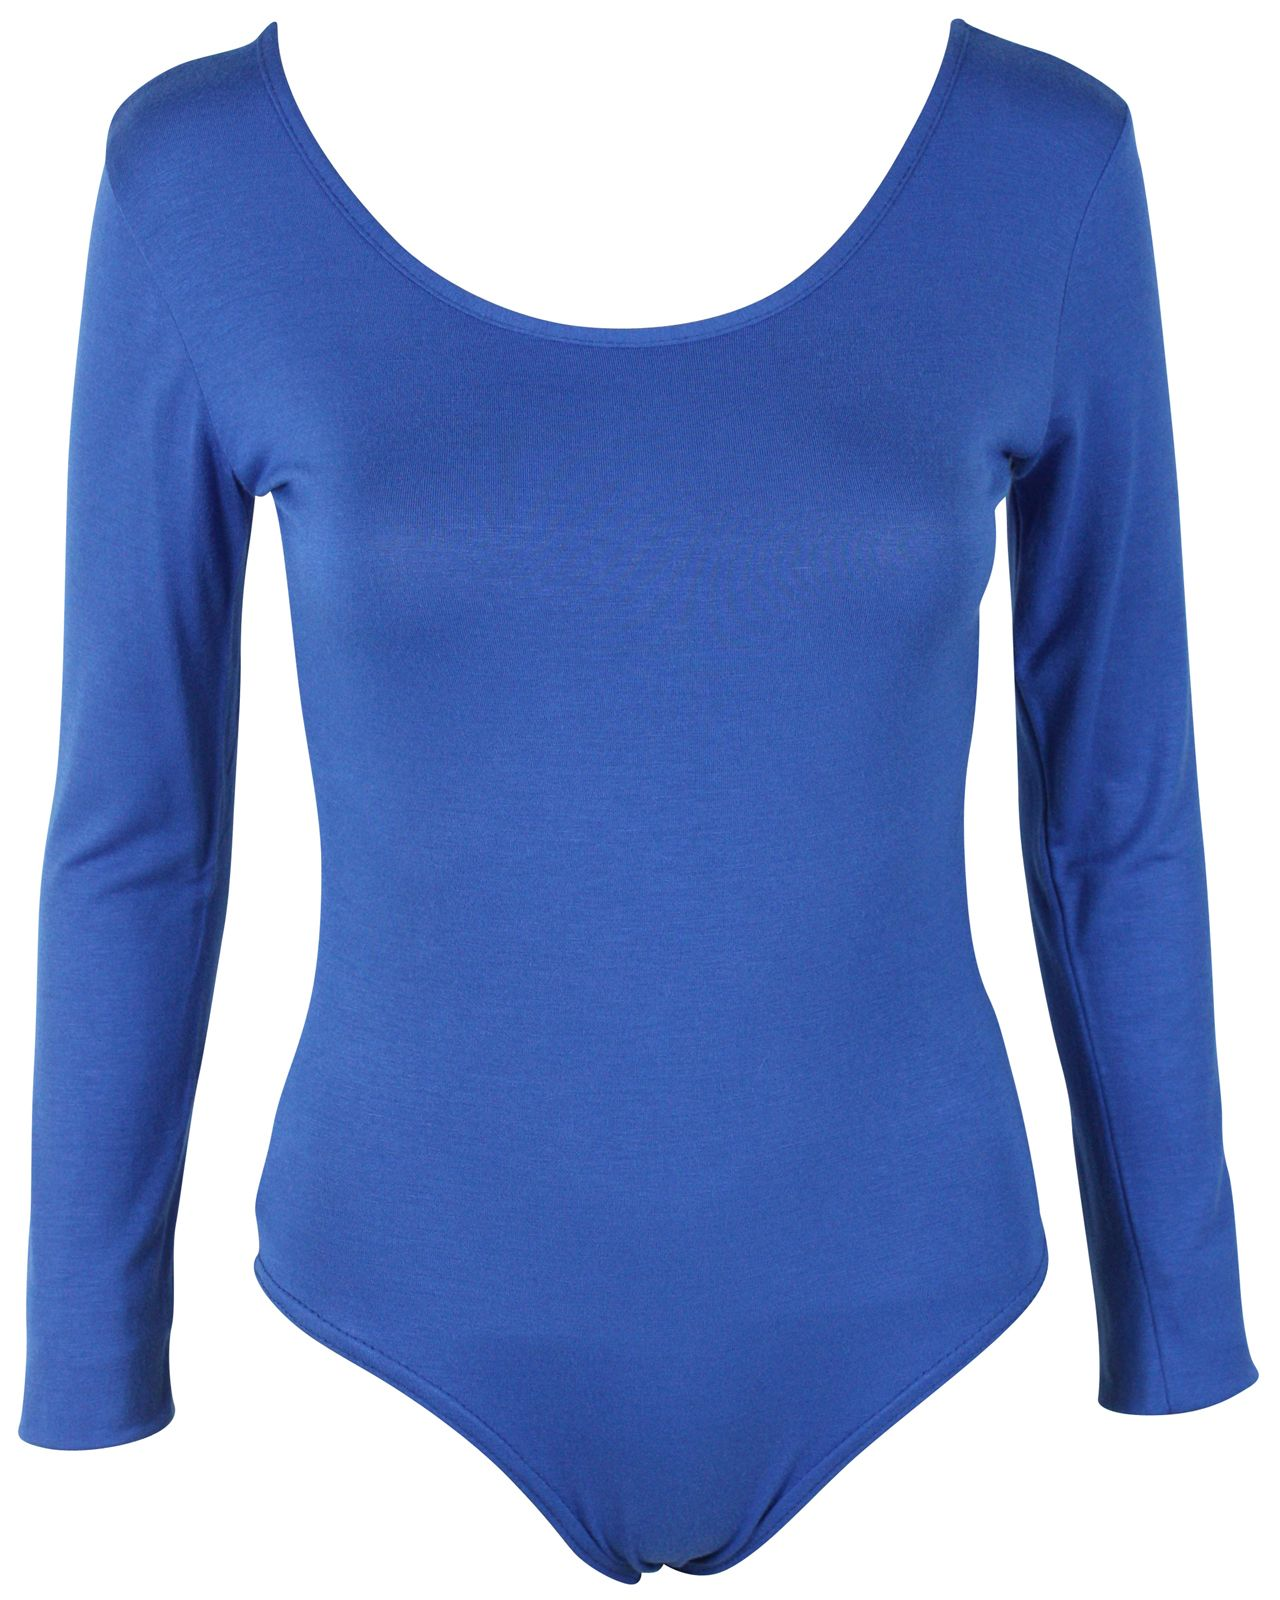 60f52c432469 LADIES-LONG-SLEEVE-STRETCH-LEOTARD-BODYSUIT-WOMENS-TOP